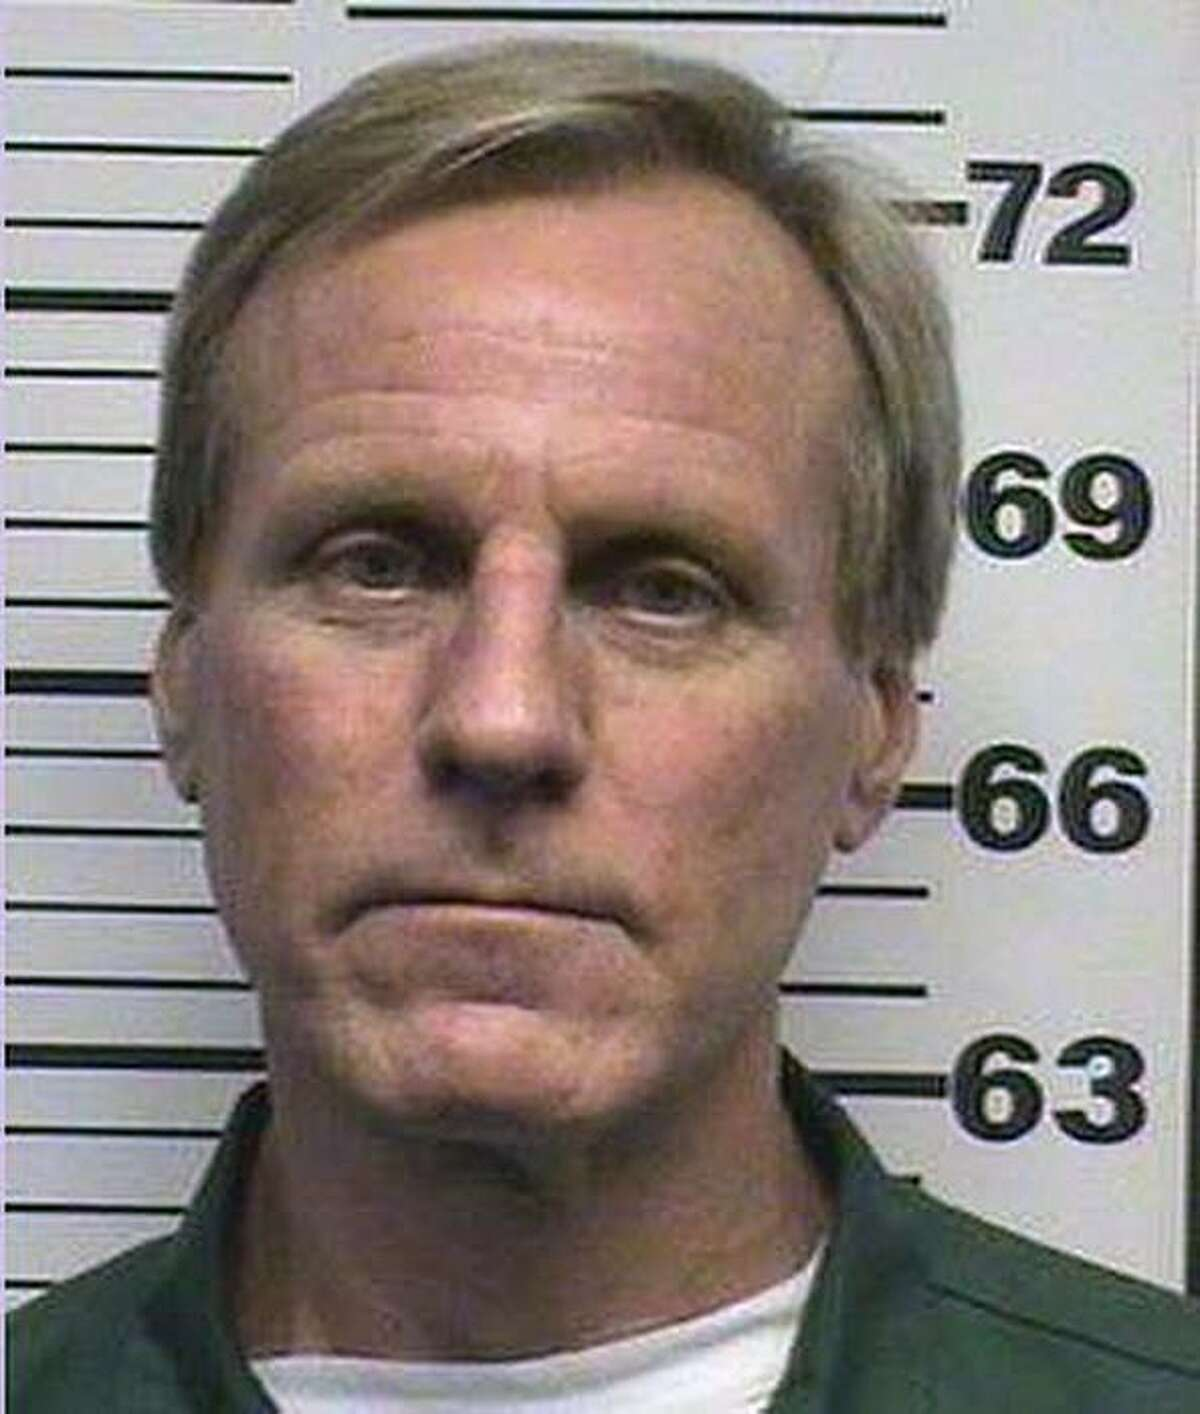 In this handout photo provided by New York State Department of Correctional Services, Thomas Doyle is shown in a prison mug shot, Wednesday Sept. 1, 2010. Doyle, an admitted art thief, is now the focus of attention in the missing $1.3 million painting ofJean-Baptiste-Camille Corot's